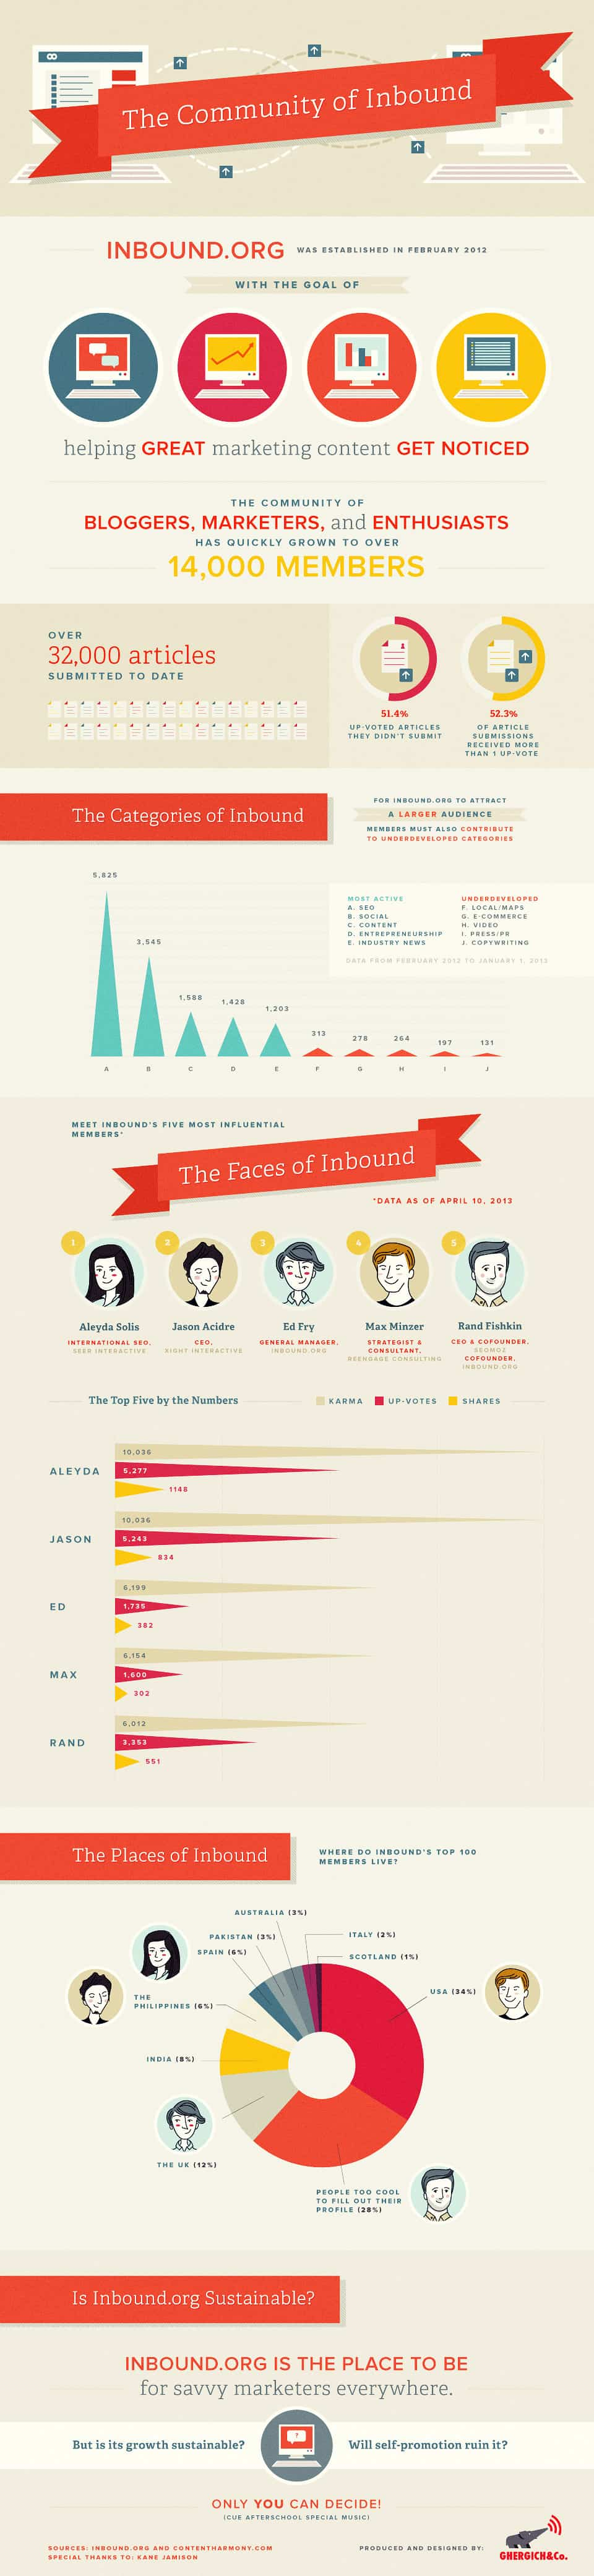 The Community of Inbound Marketing Infographic